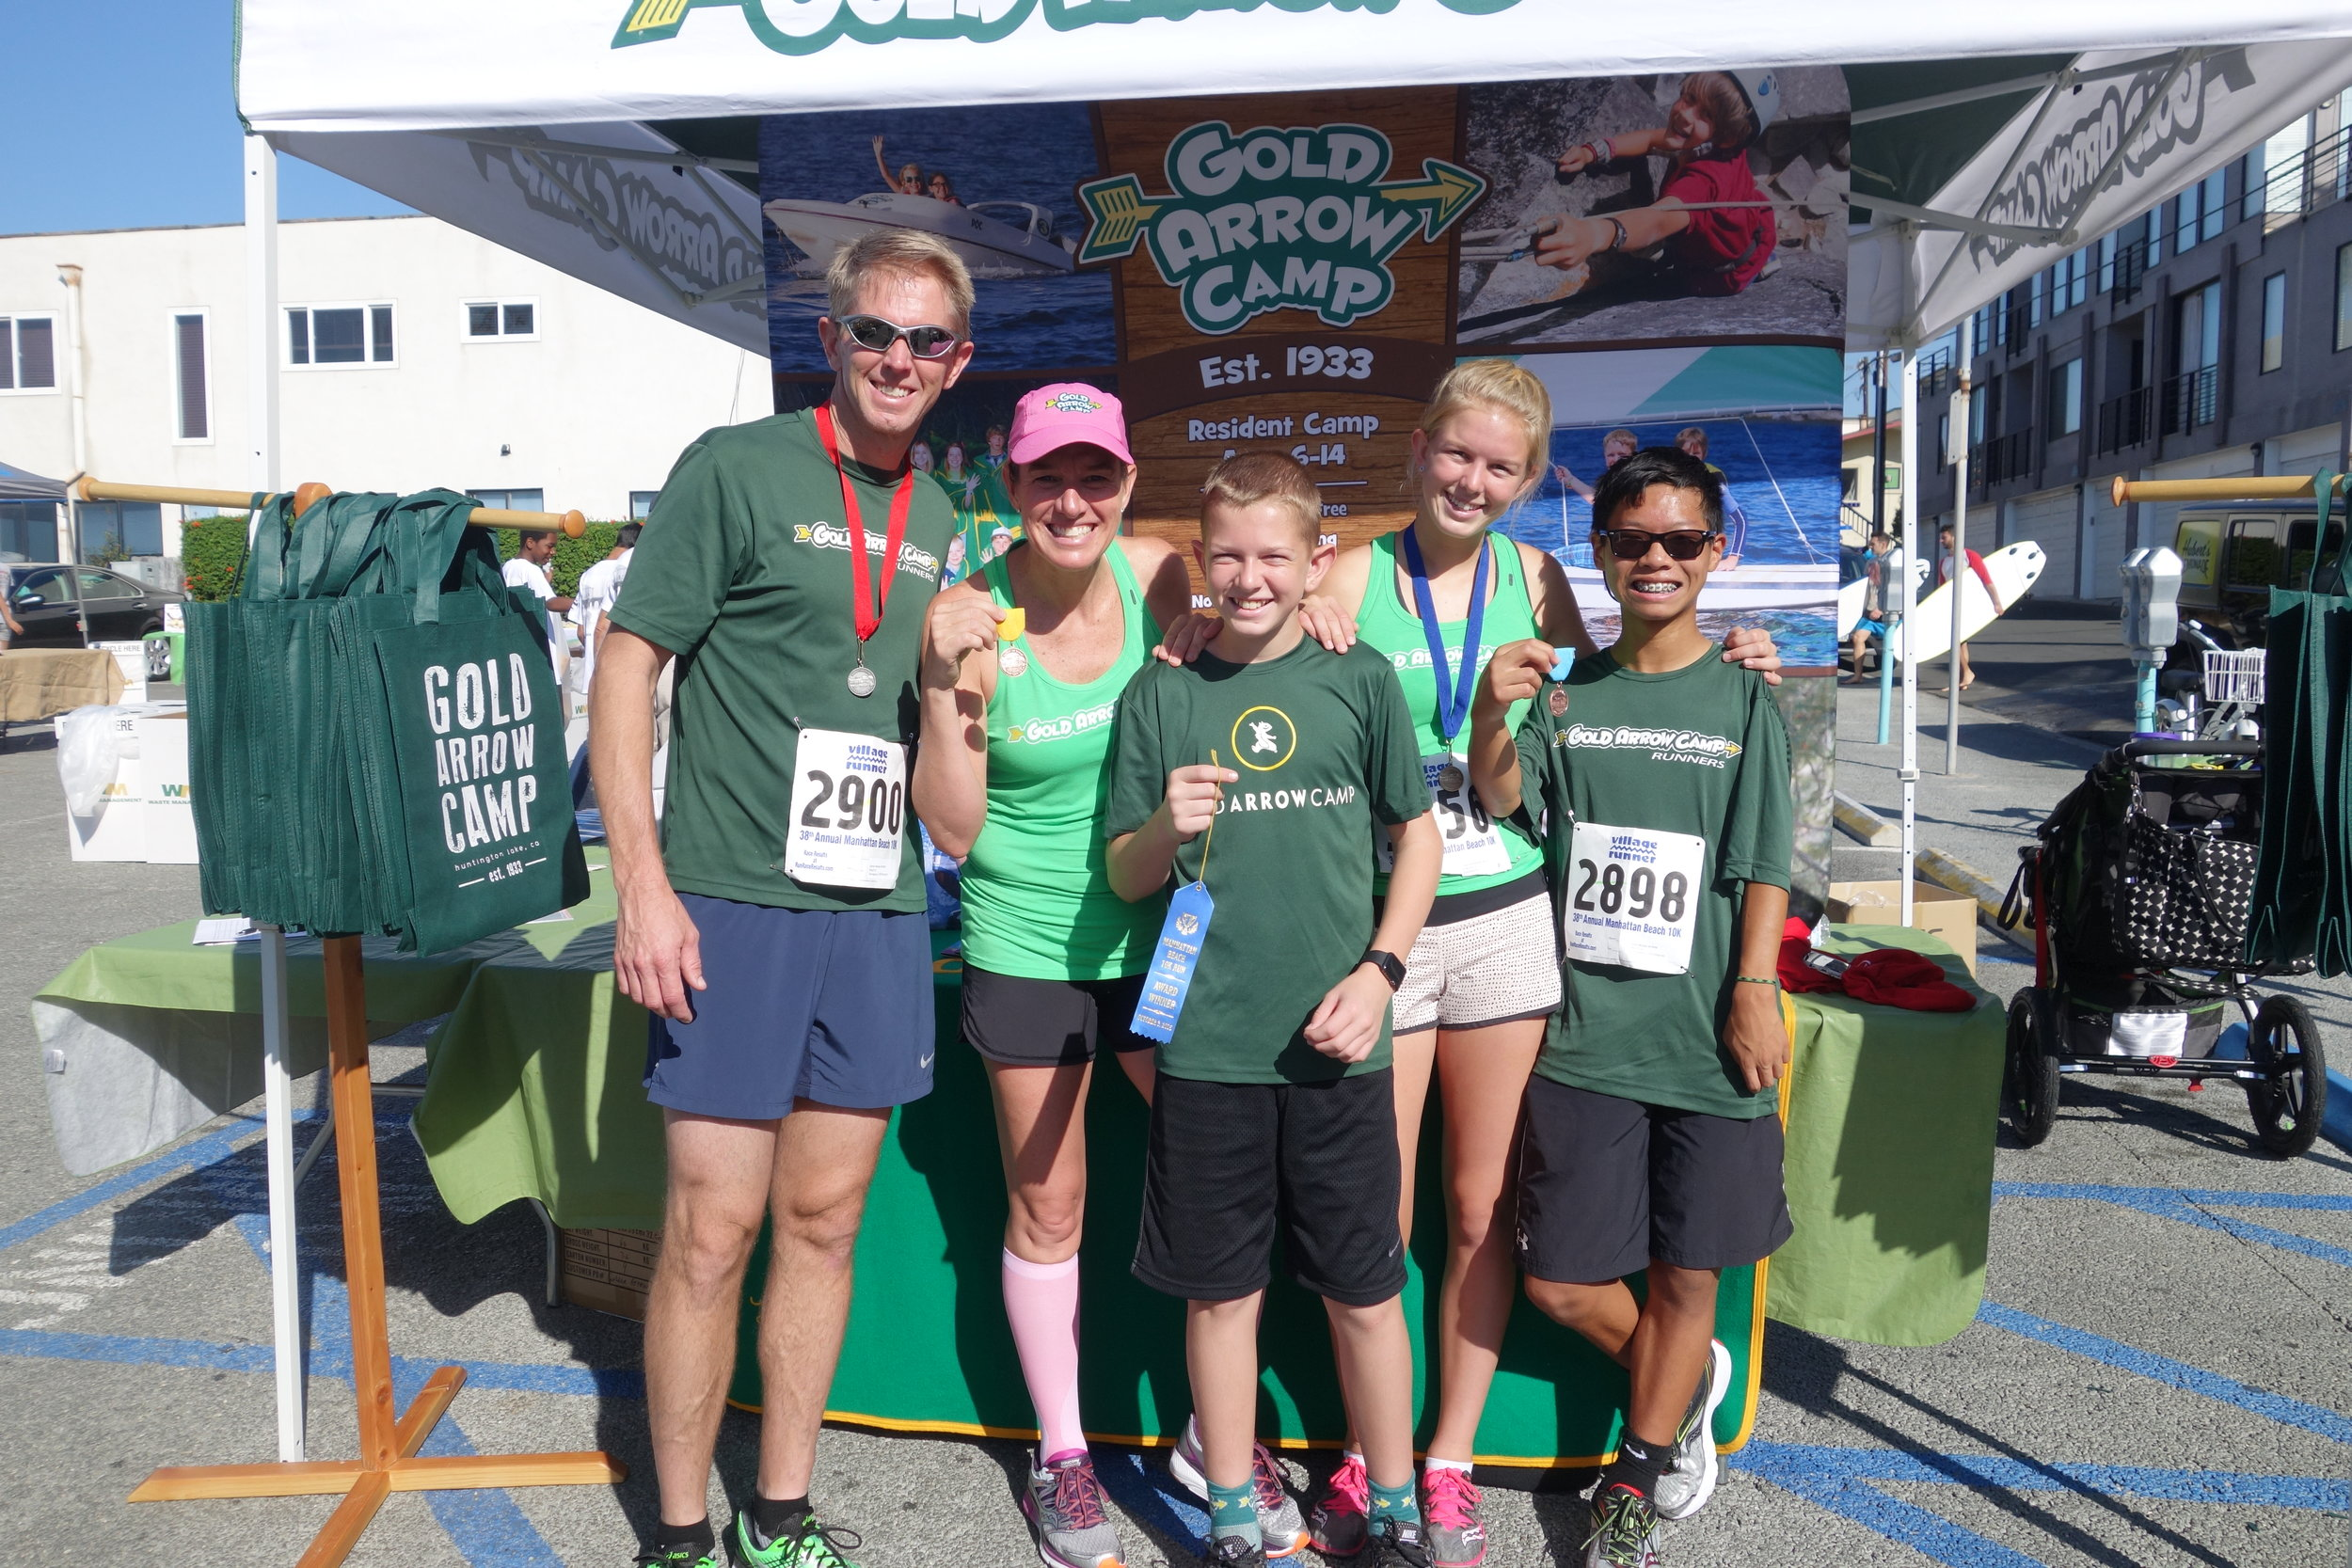 2018 Gold Arrow Campers/Racers at the Manhattan Beach 10k.